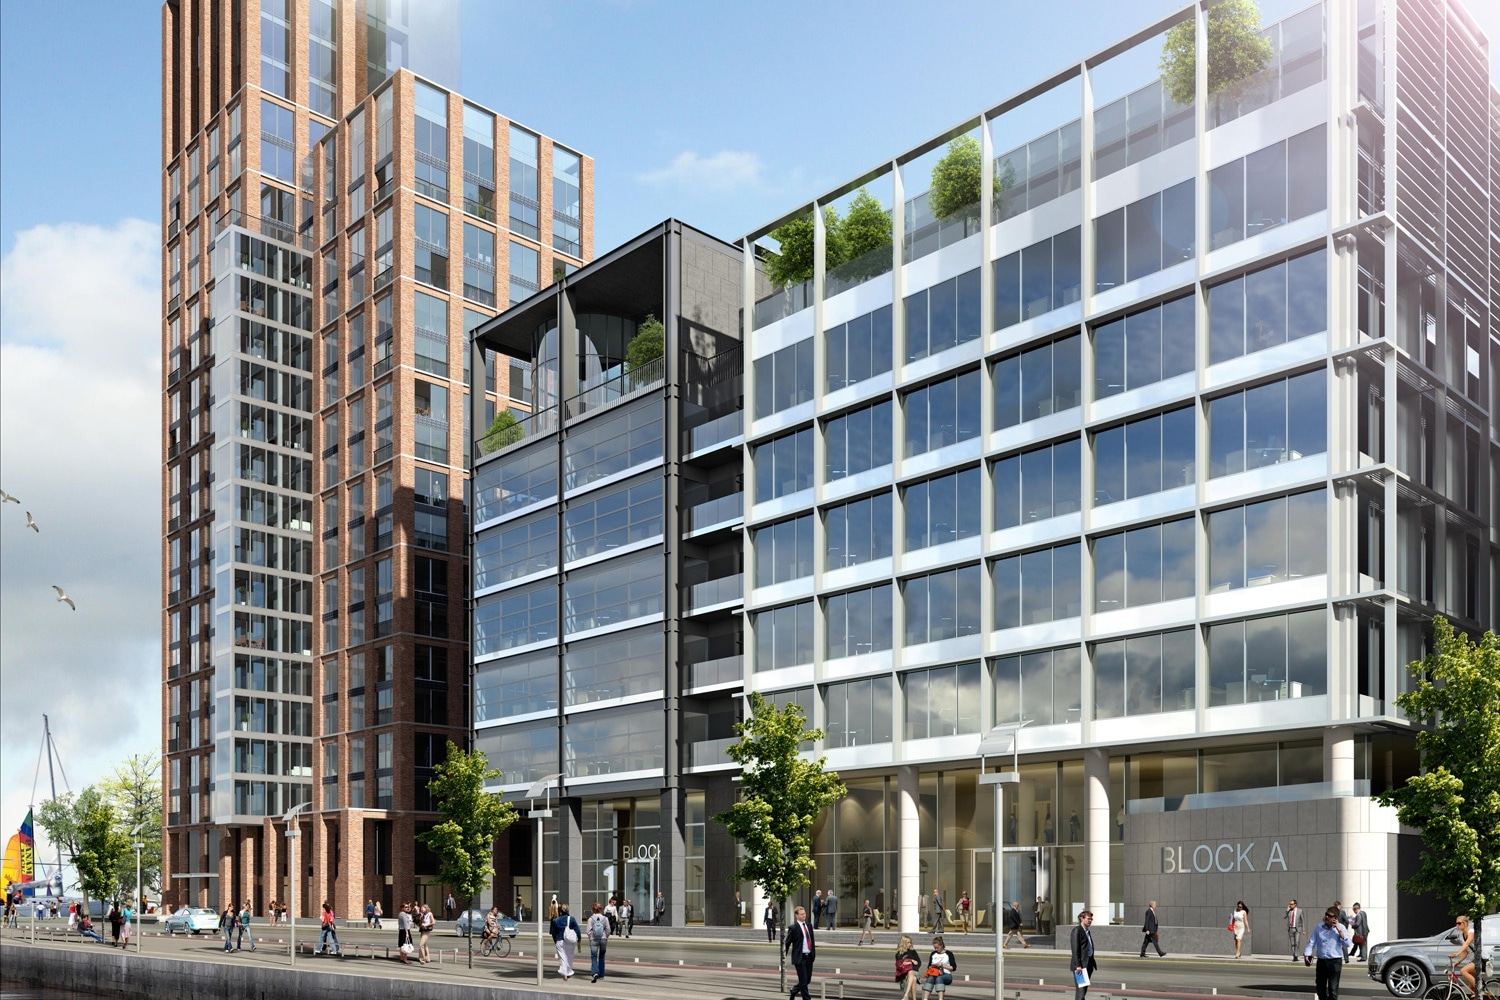 Capital Dock Office Development